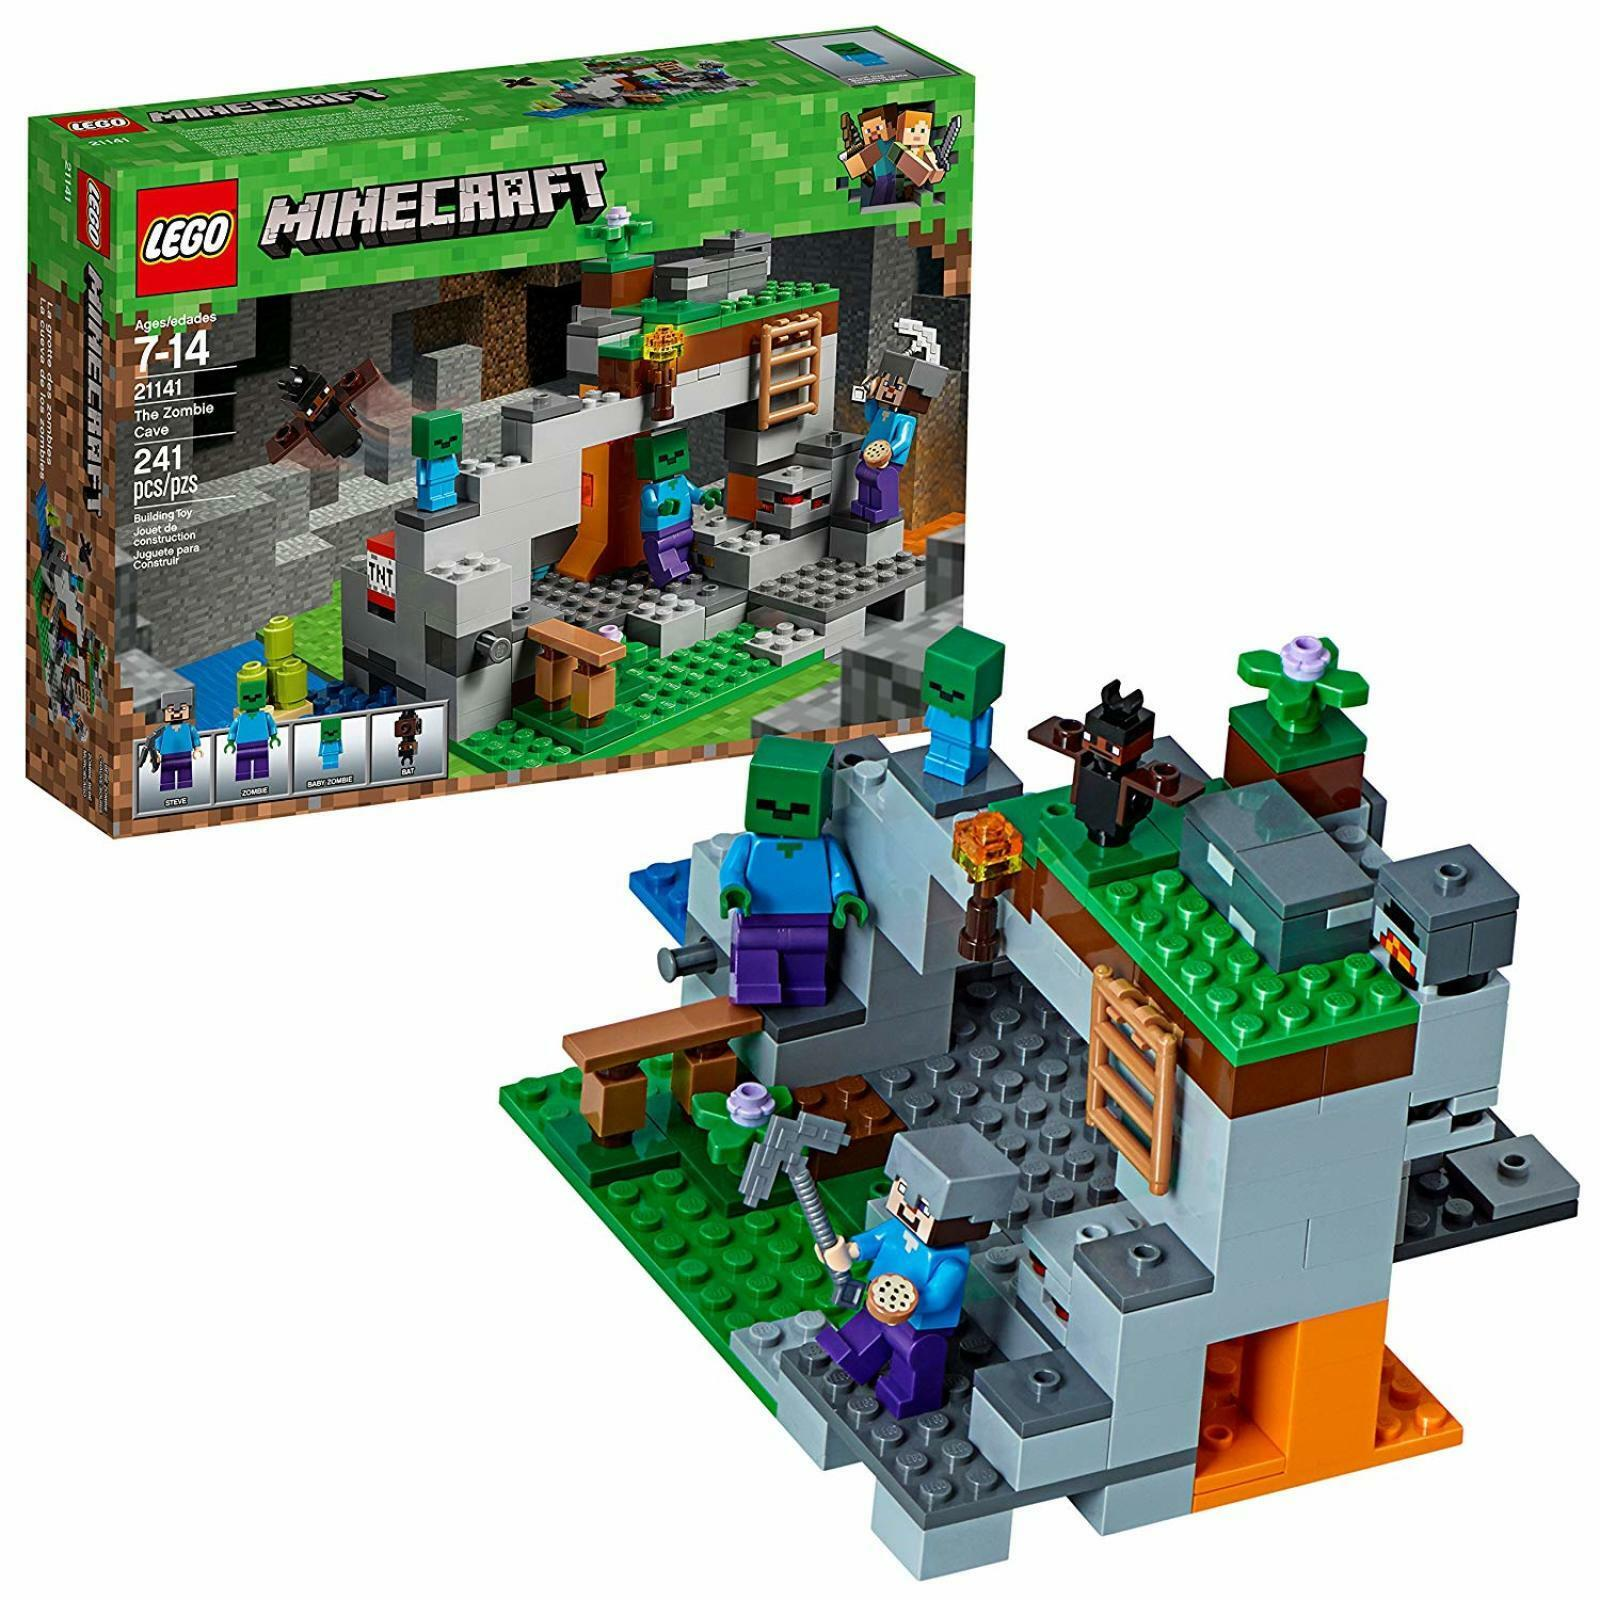 LEGO Minecraft The Zombie Cave Building Kit 241 pcs Sealed Kids Toy Gift NEW